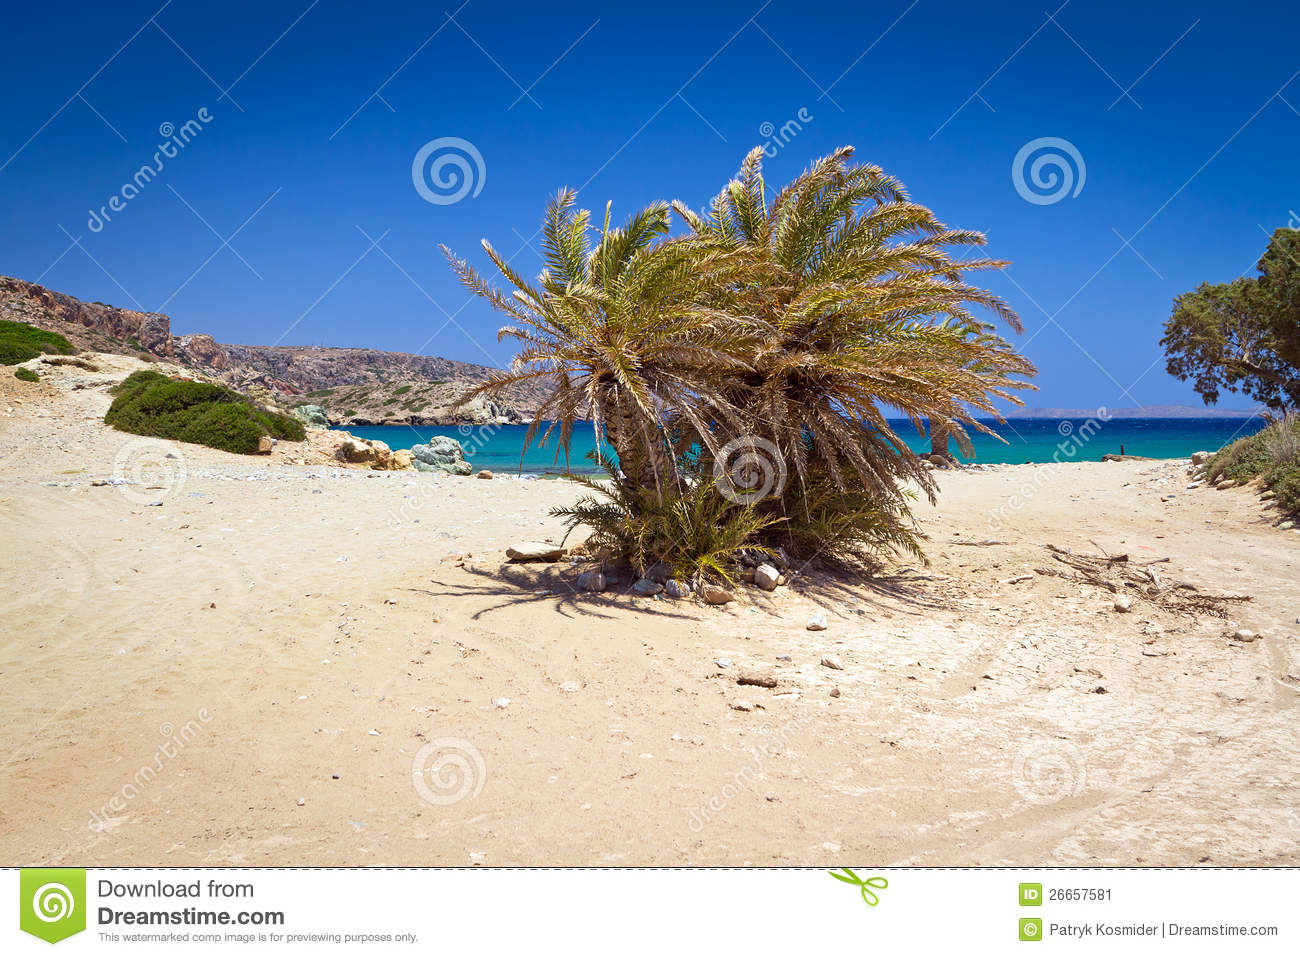 Blue Or Green Cretan Date Palm Trees On Vai Beach Greece Royalty Free